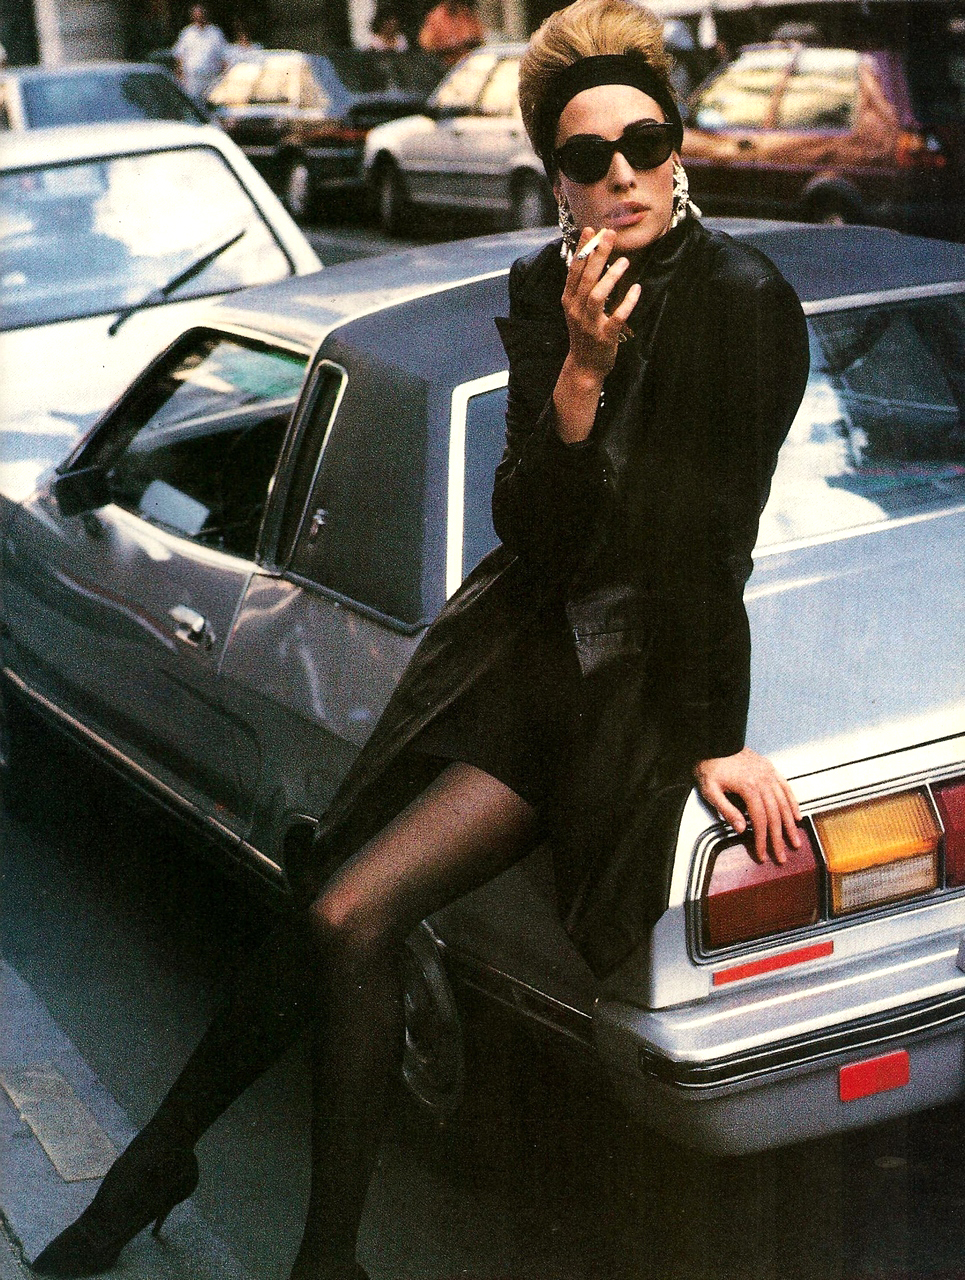 Tatjana Patitz in Vogue Italia October 1990 via www.fashionedbylove.co.uk